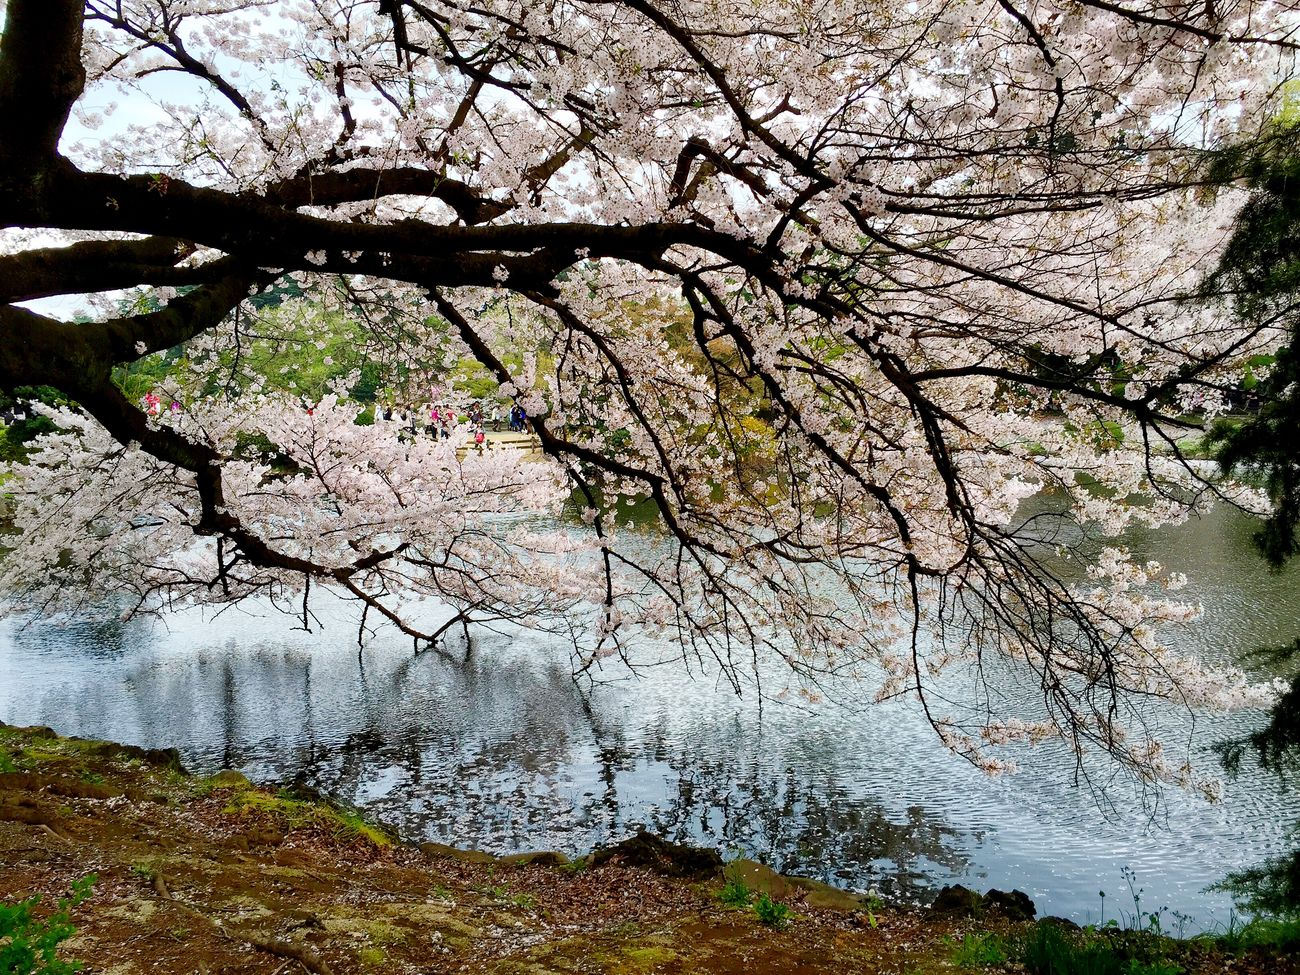 新宿御苑の桜! すごい! Japan Sakura Cherry Blossoms Nature Park Shinjuku Gyoen Shinjuku 新宿 新宿御苑